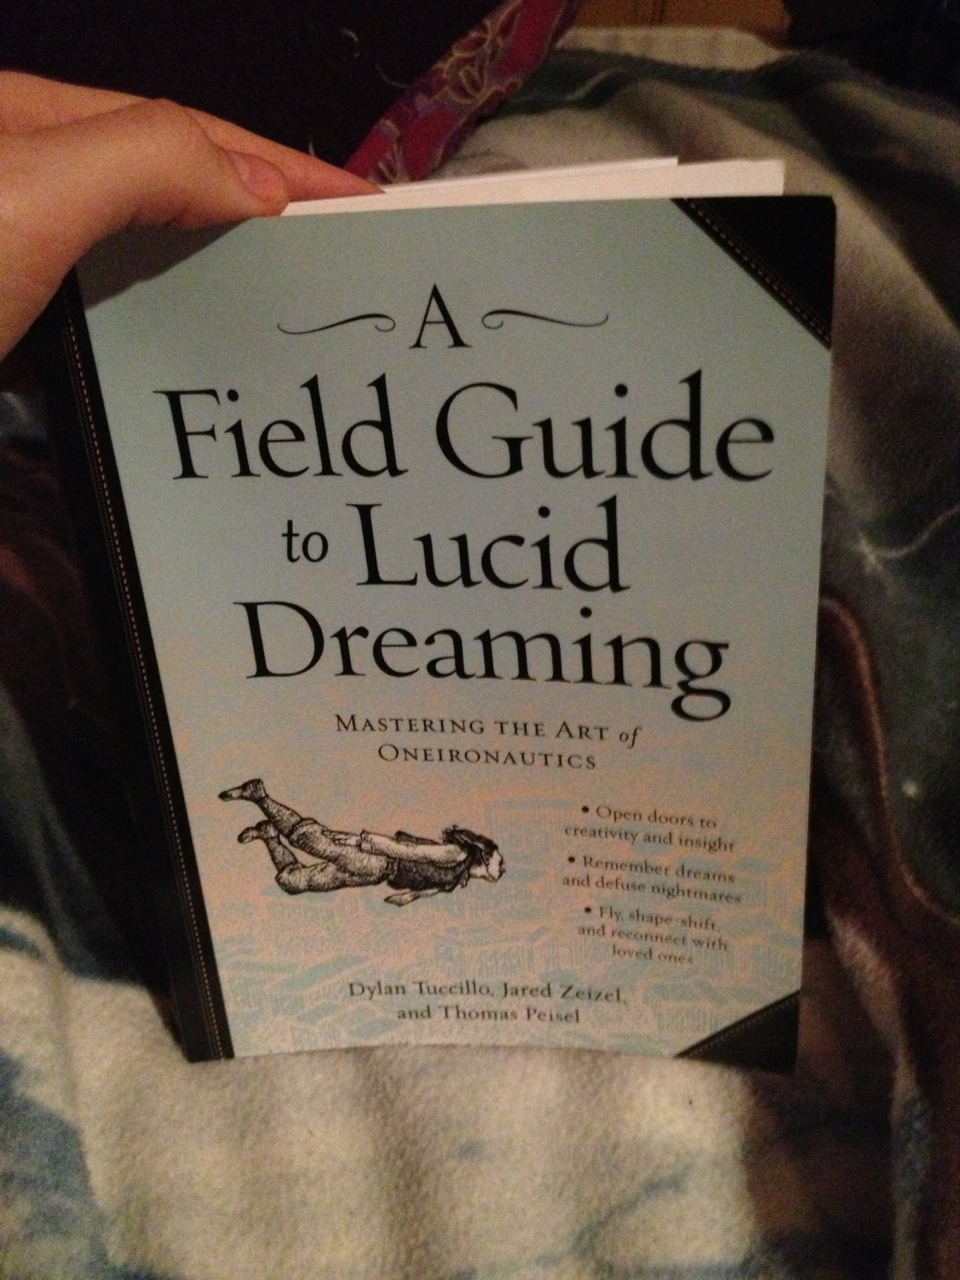 This book by Dylan Tuccillo, Jared Zeizel, and Thomas Peisel has wonderful tips to help you with becoming lucid while dreaming